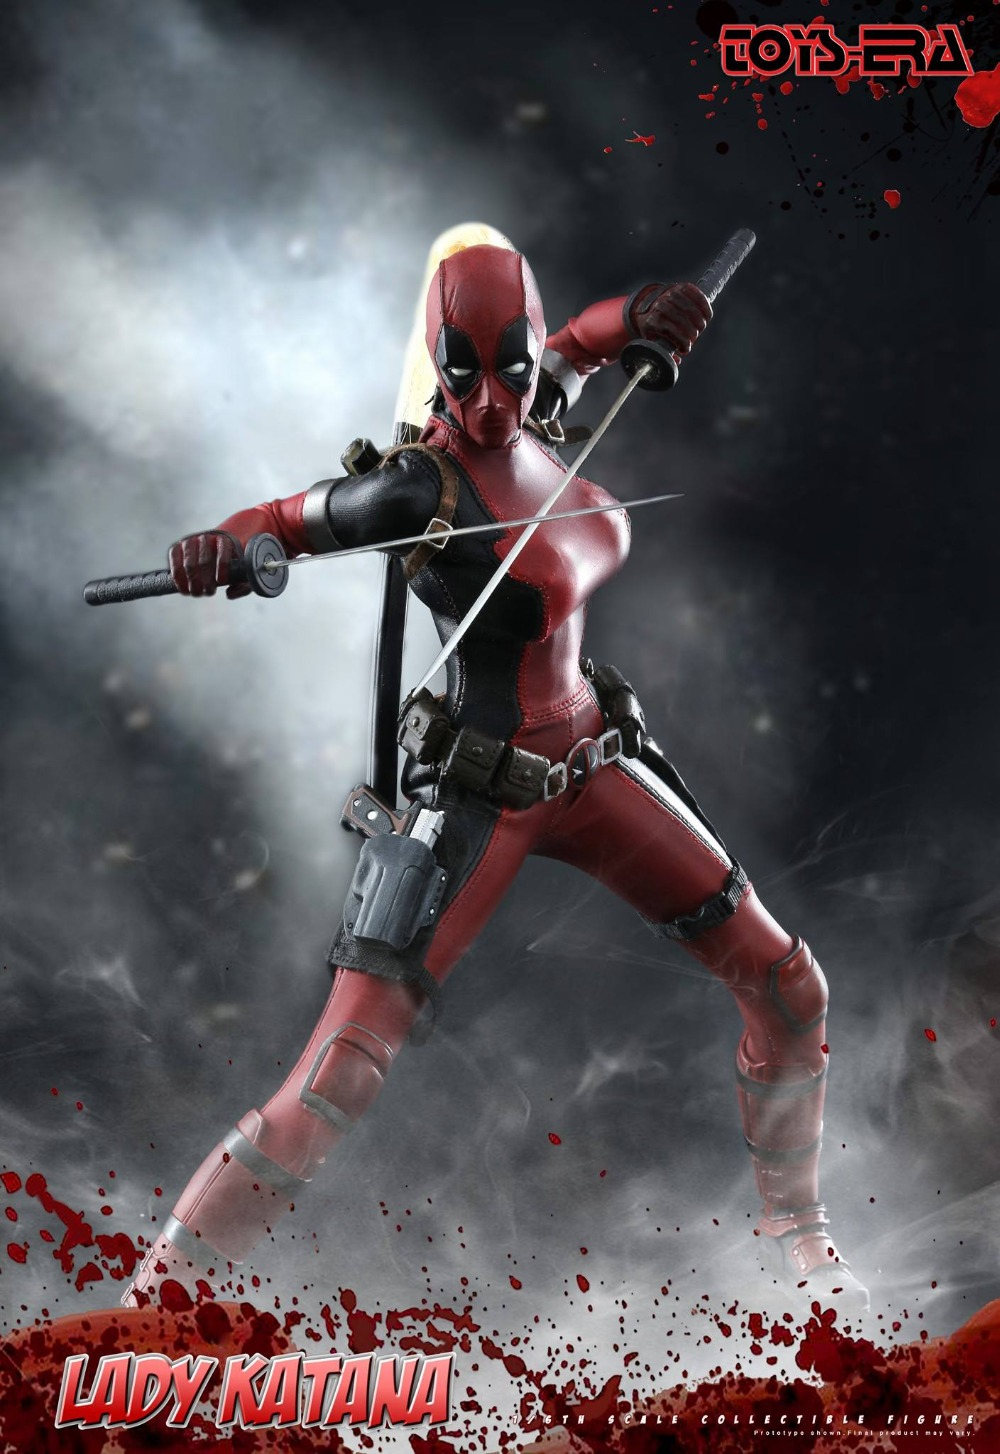 1/6 scale figure Female warrior Lady Katana in Deadpool clothing 12 Action figure doll Collectible Plastic Model Toys 1 6 scale figure movie wonder woman amazons amtoys 1 6 warrior collection full set action figure